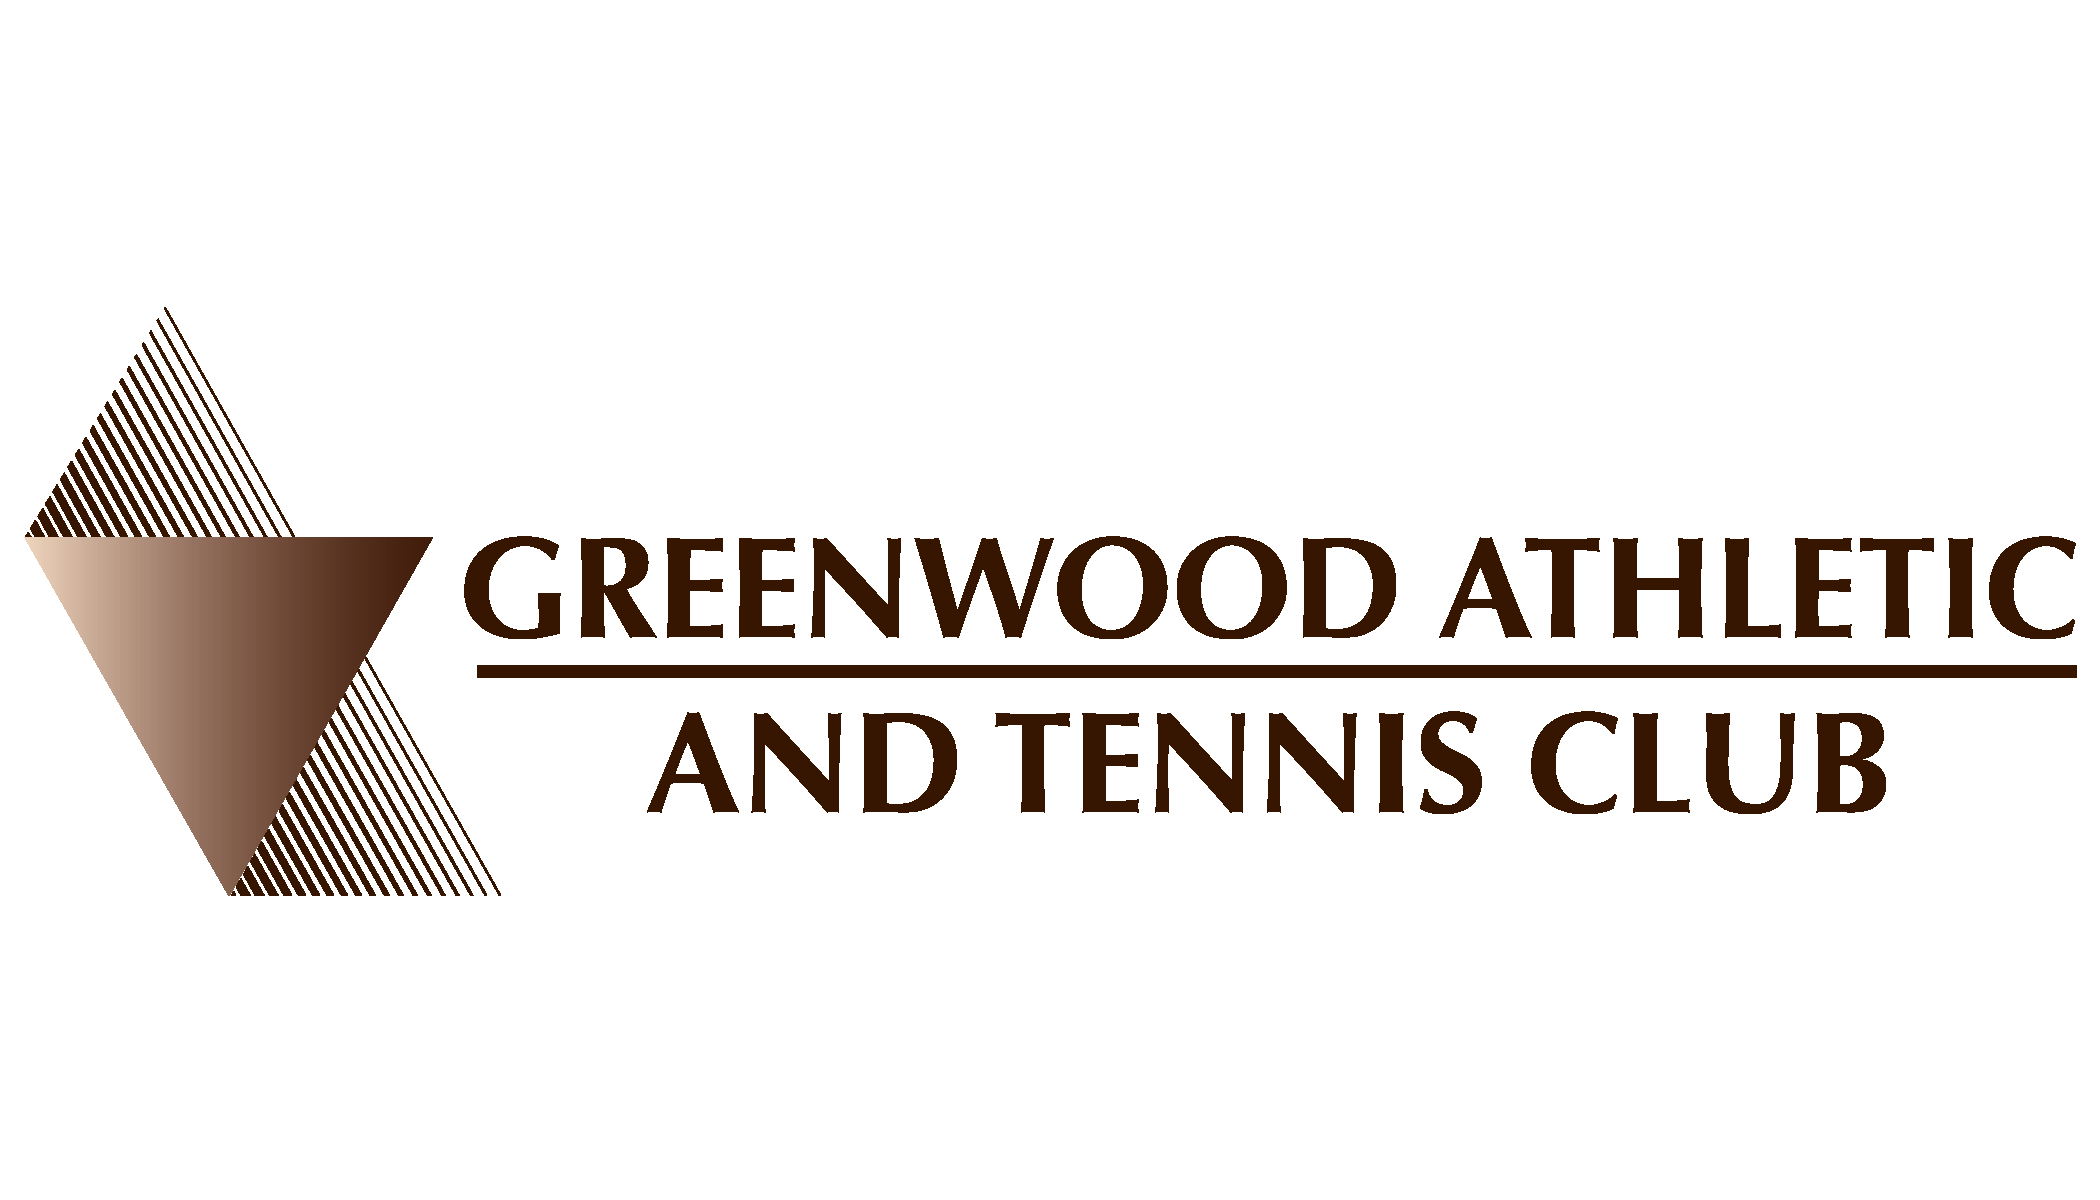 Greenwood Athletic and Tennis Club logo